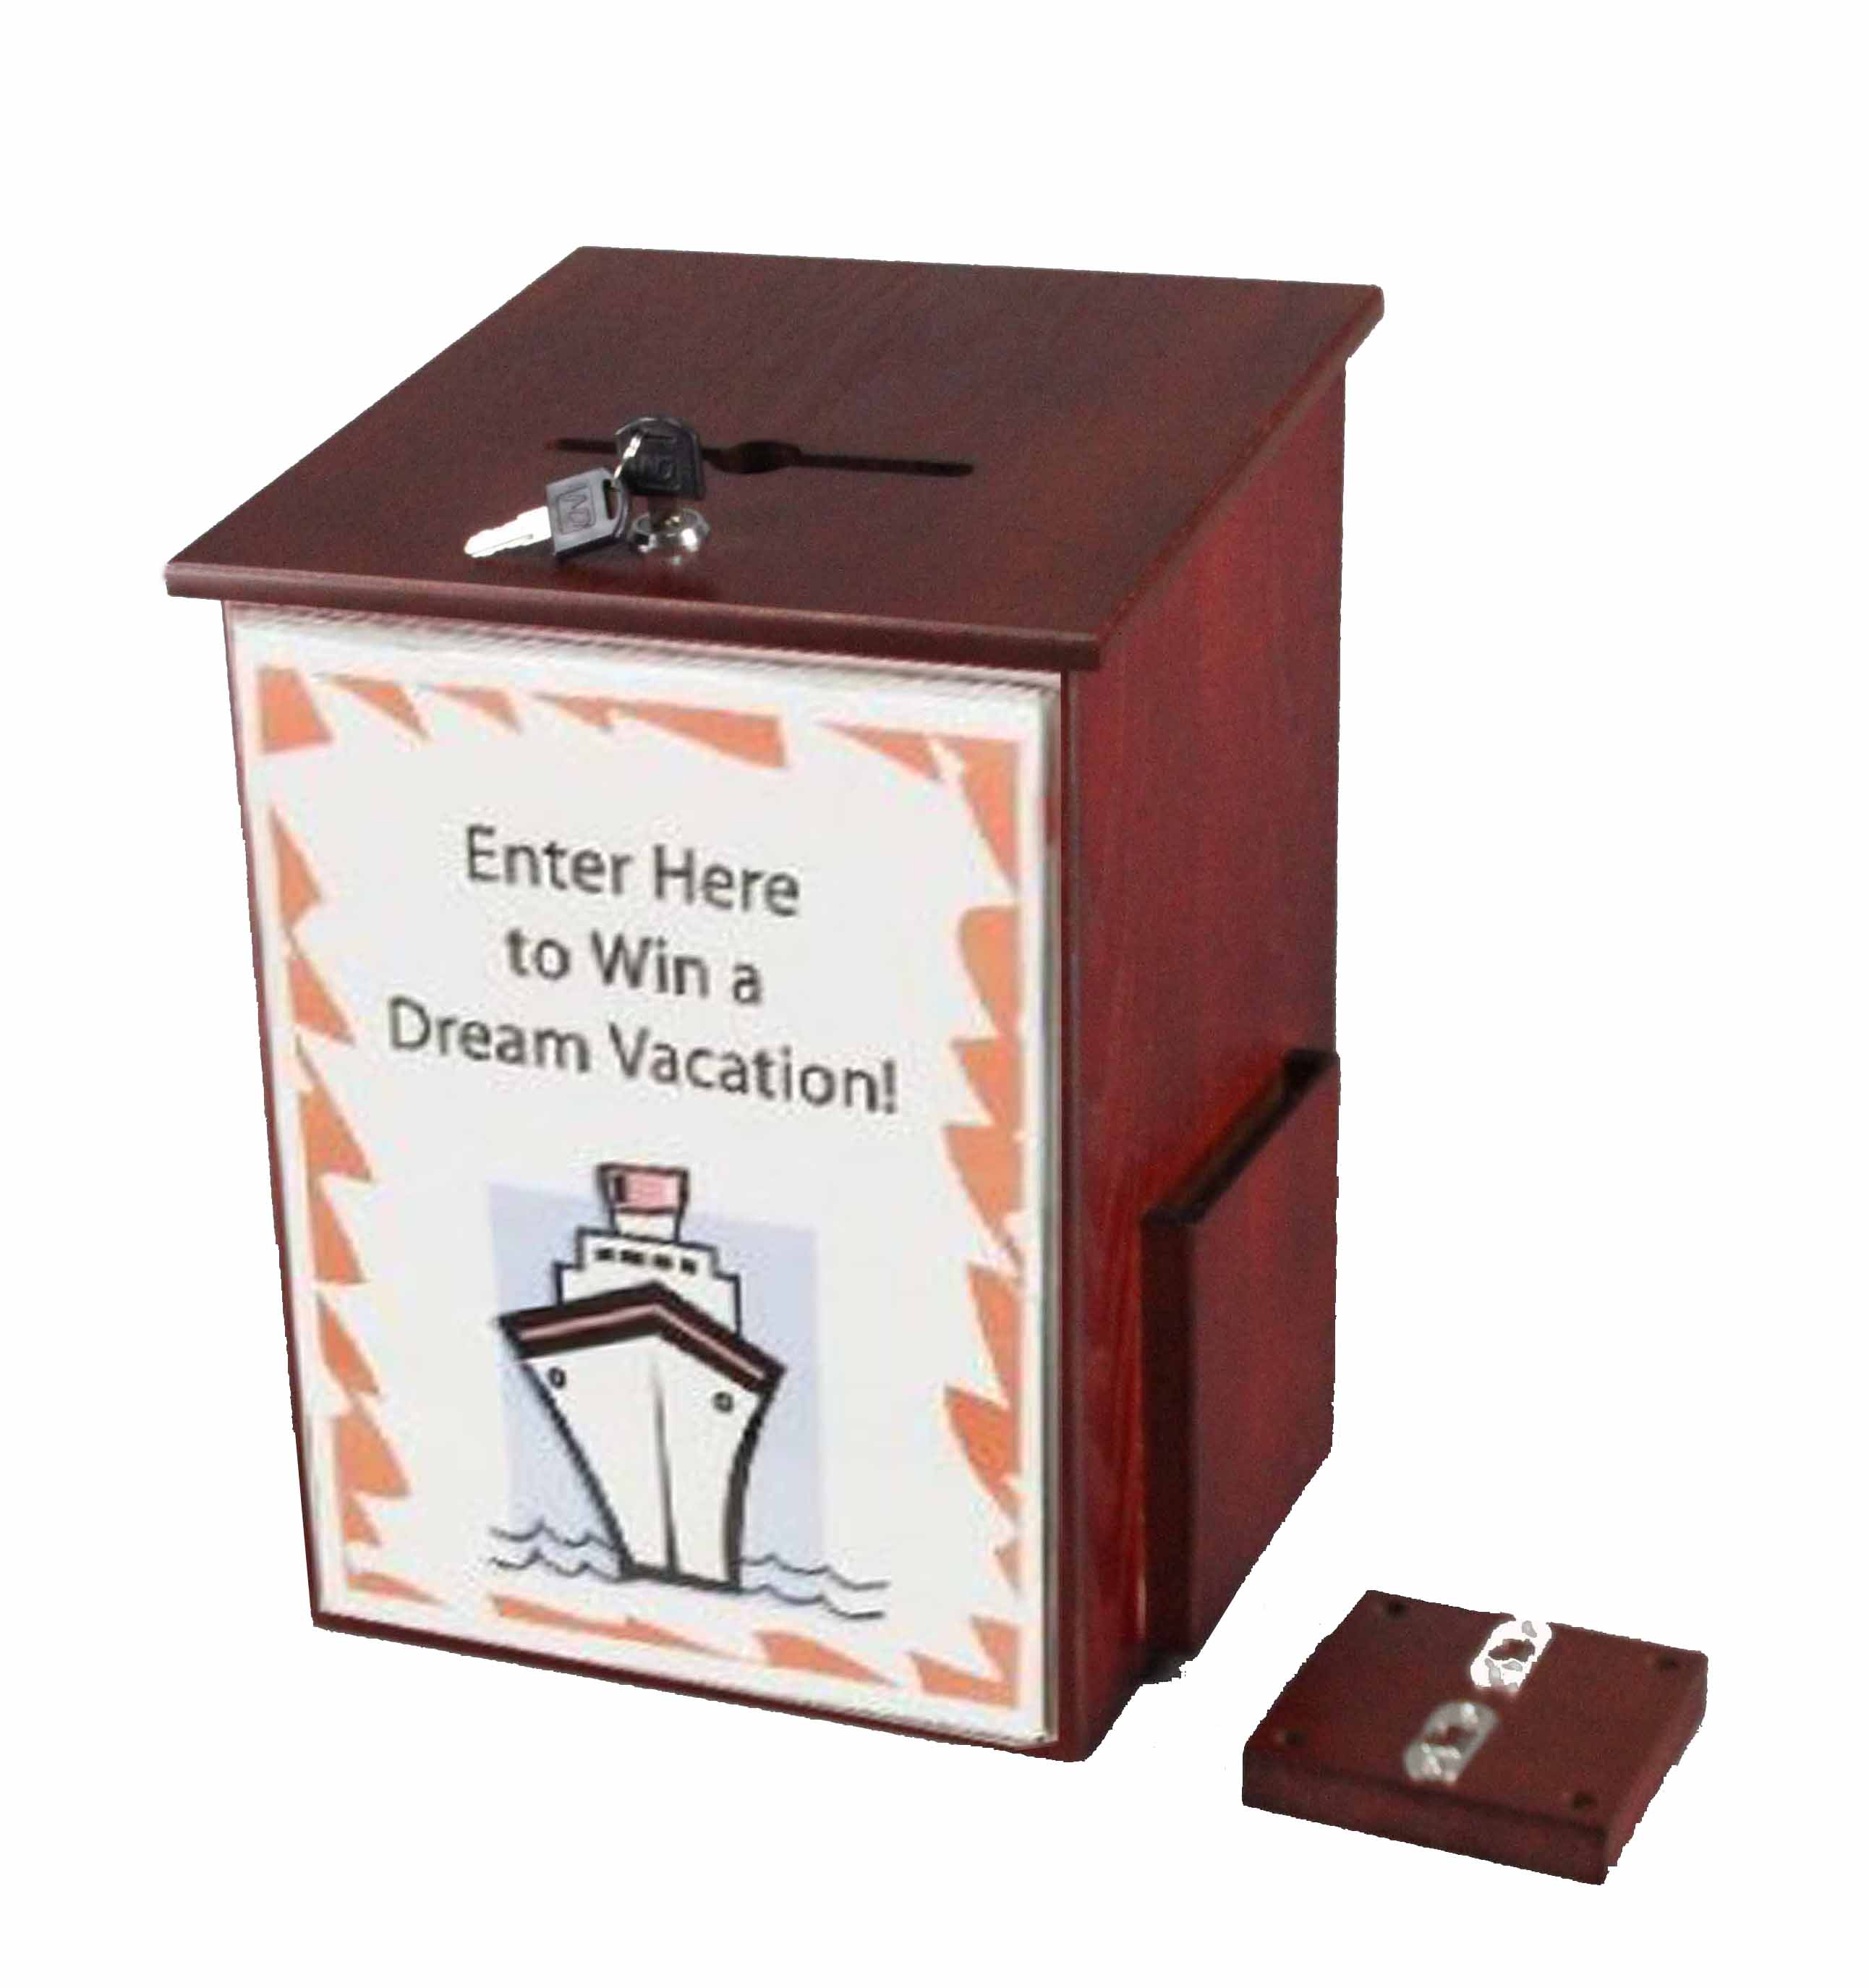 Acrylic Box Rm : Donation box tithing suggestion ballot with